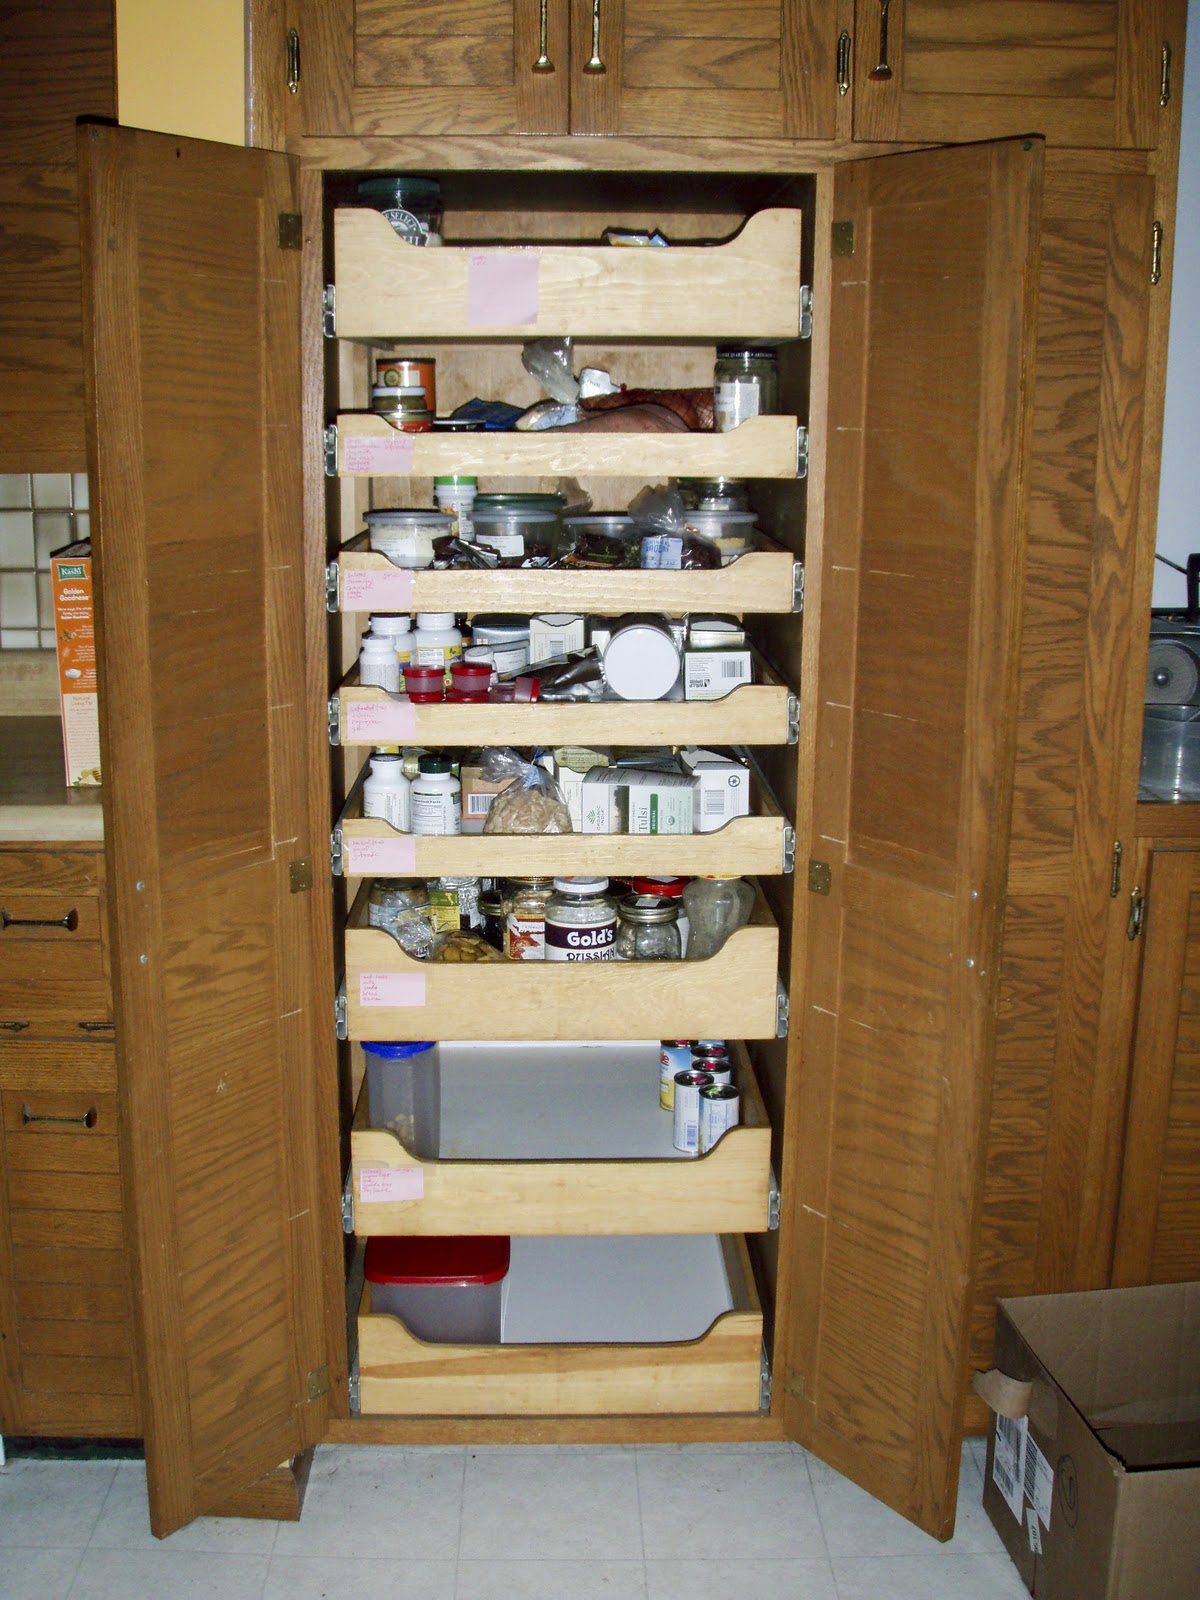 Cabinet Pull Out Shelves Kitchen Pantry Storage Pull Out Shelves Slide Out Shelves Slide Out Shelves Llc